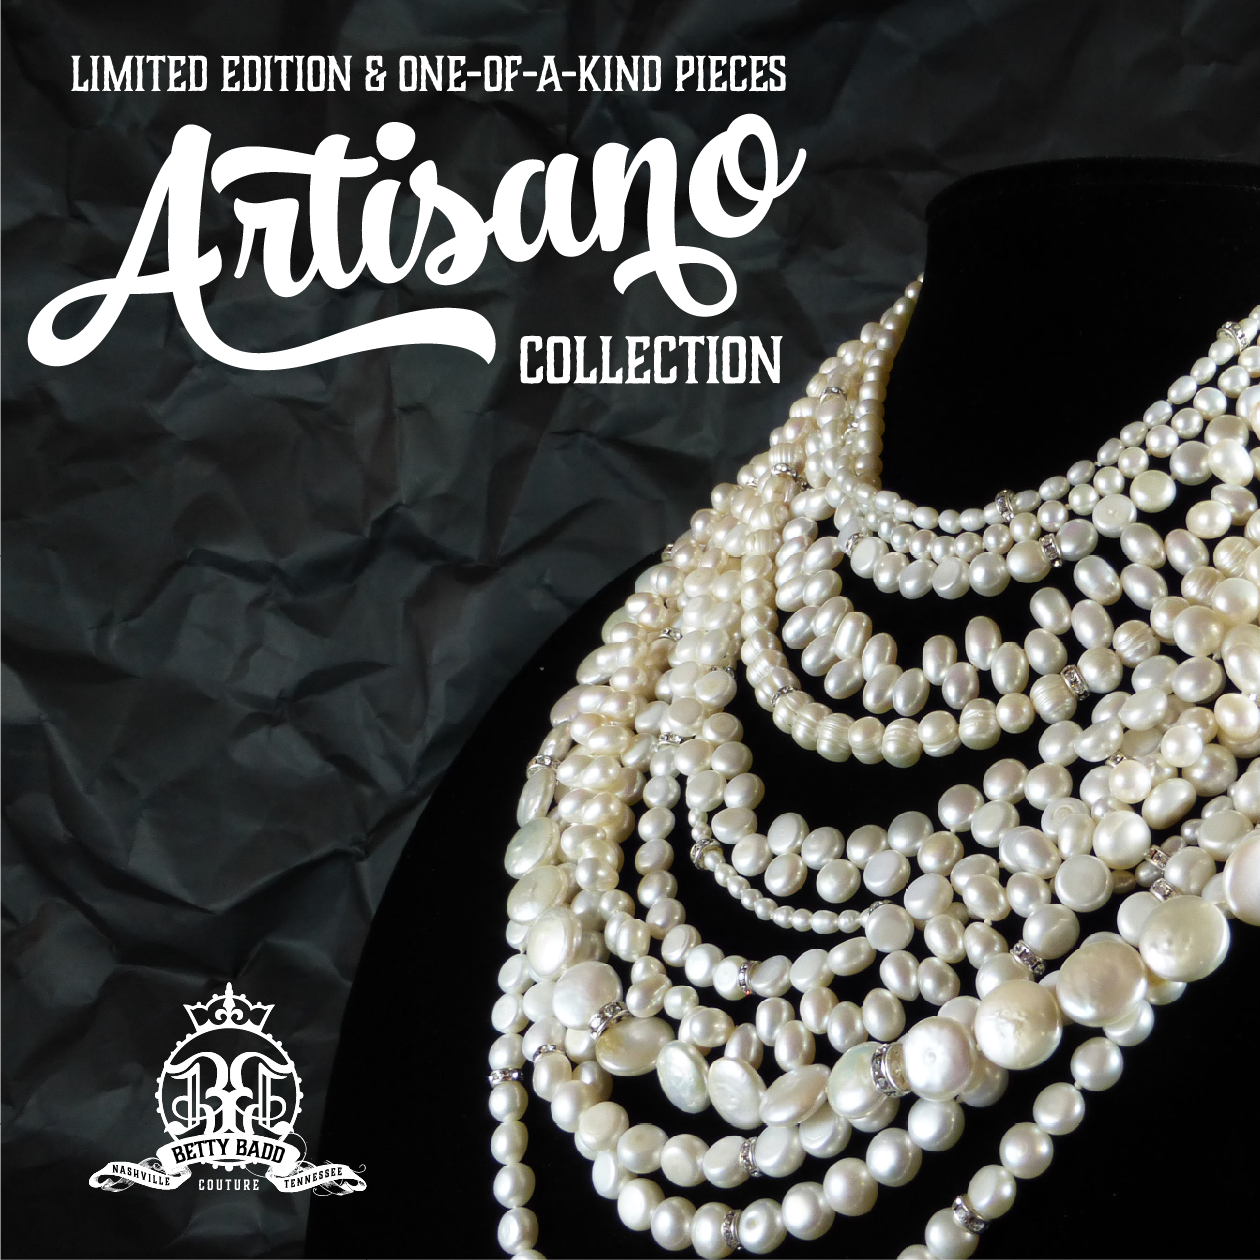 The story of Betty Badd Couture's Artisano Collection